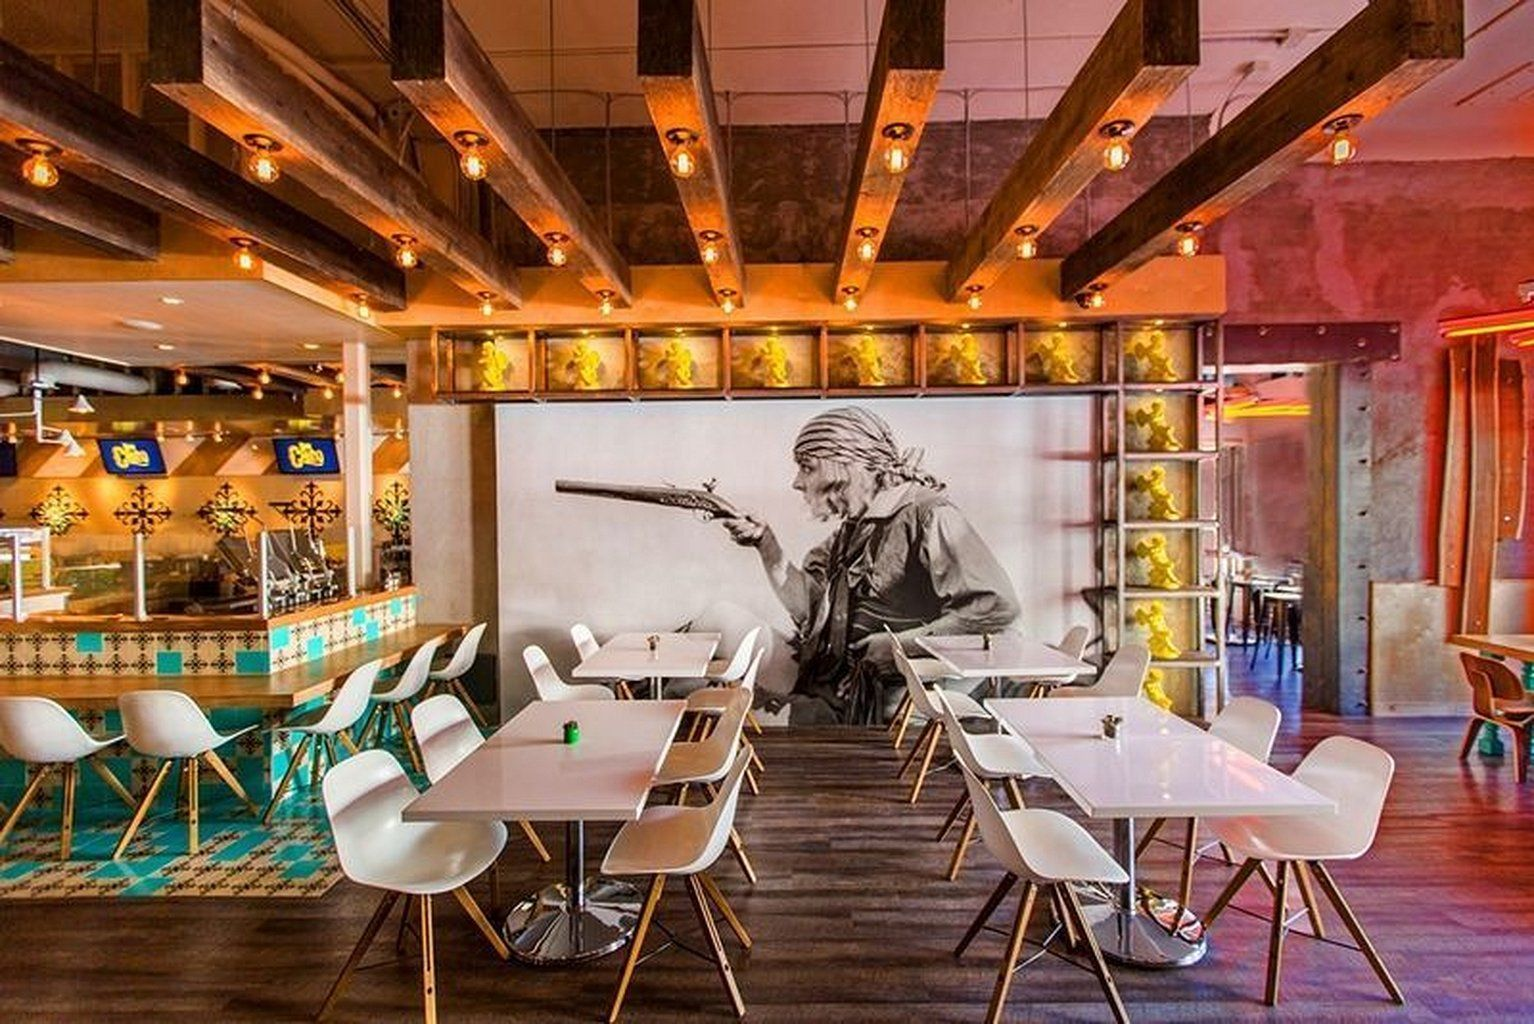 Cafe Interior Ideas Creative 29 | Restaurant interior design, Cafe ...